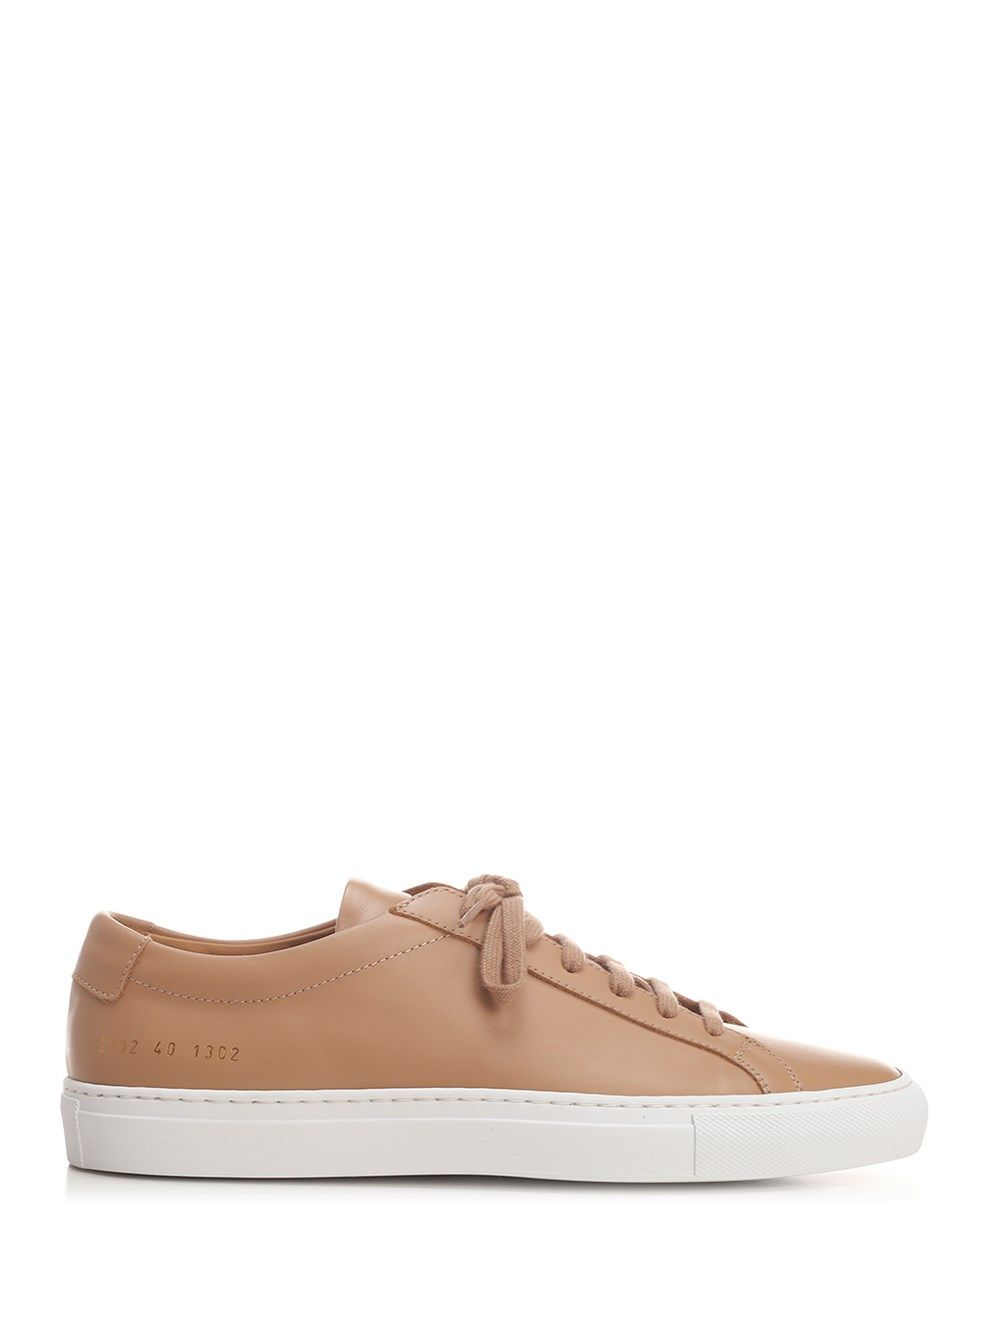 Common Projects COMMON PROJECTS MEN'S 22921302 BEIGE OTHER MATERIALS SNEAKERS